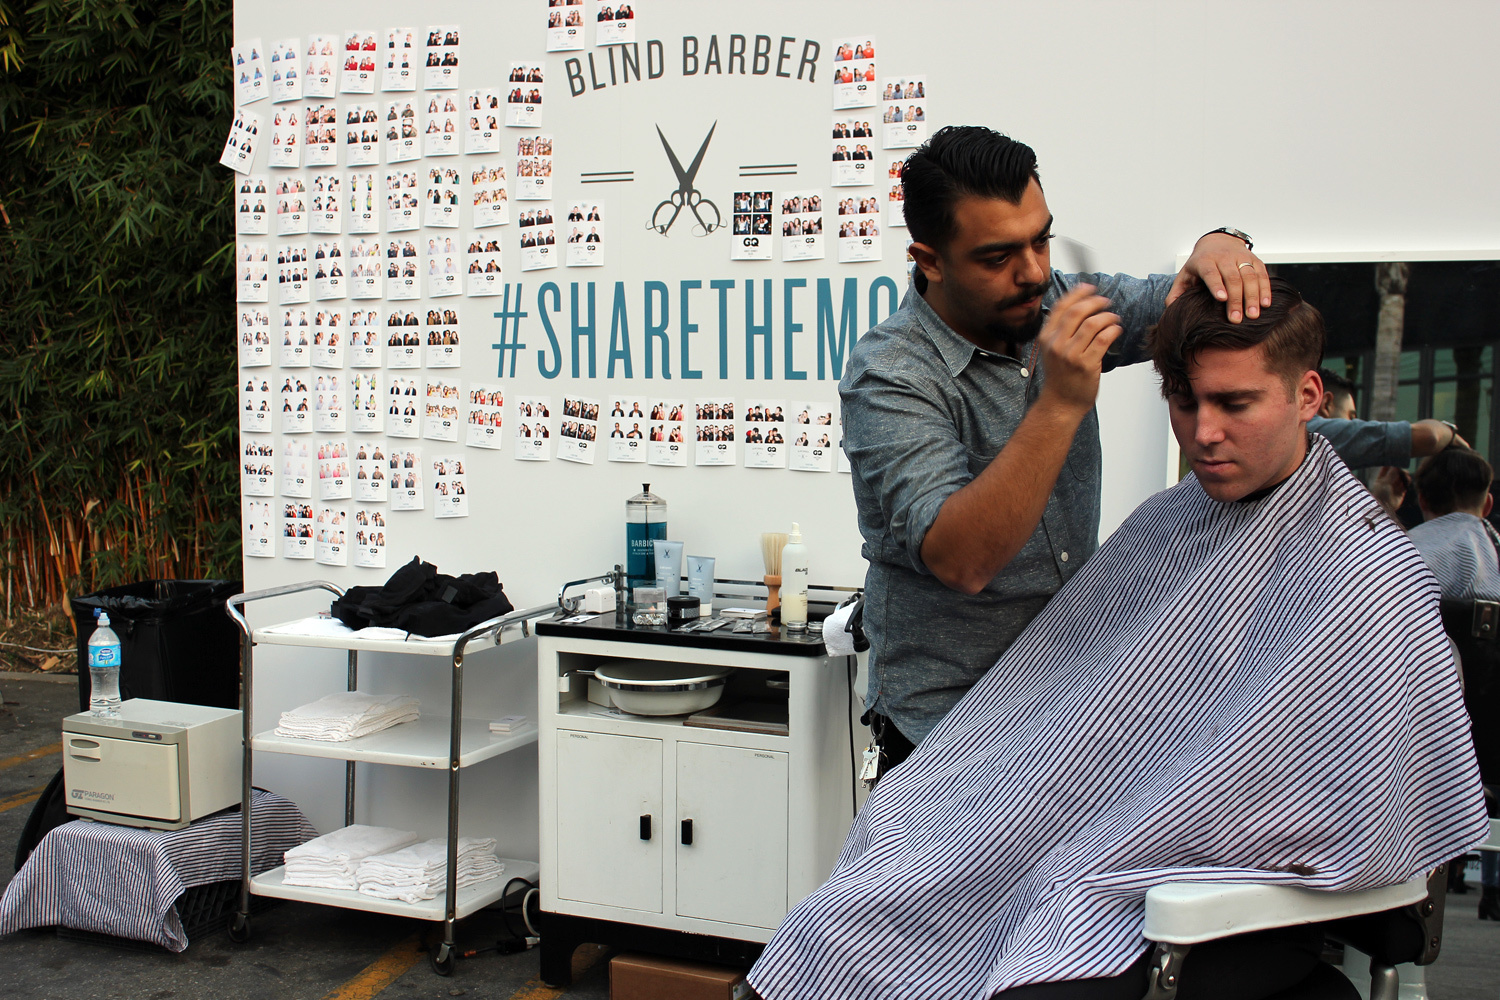 Blind Barber offers free shaves and haircuts at The Brig's #GQHQ lot party. (Photo by Glennie Rabin)